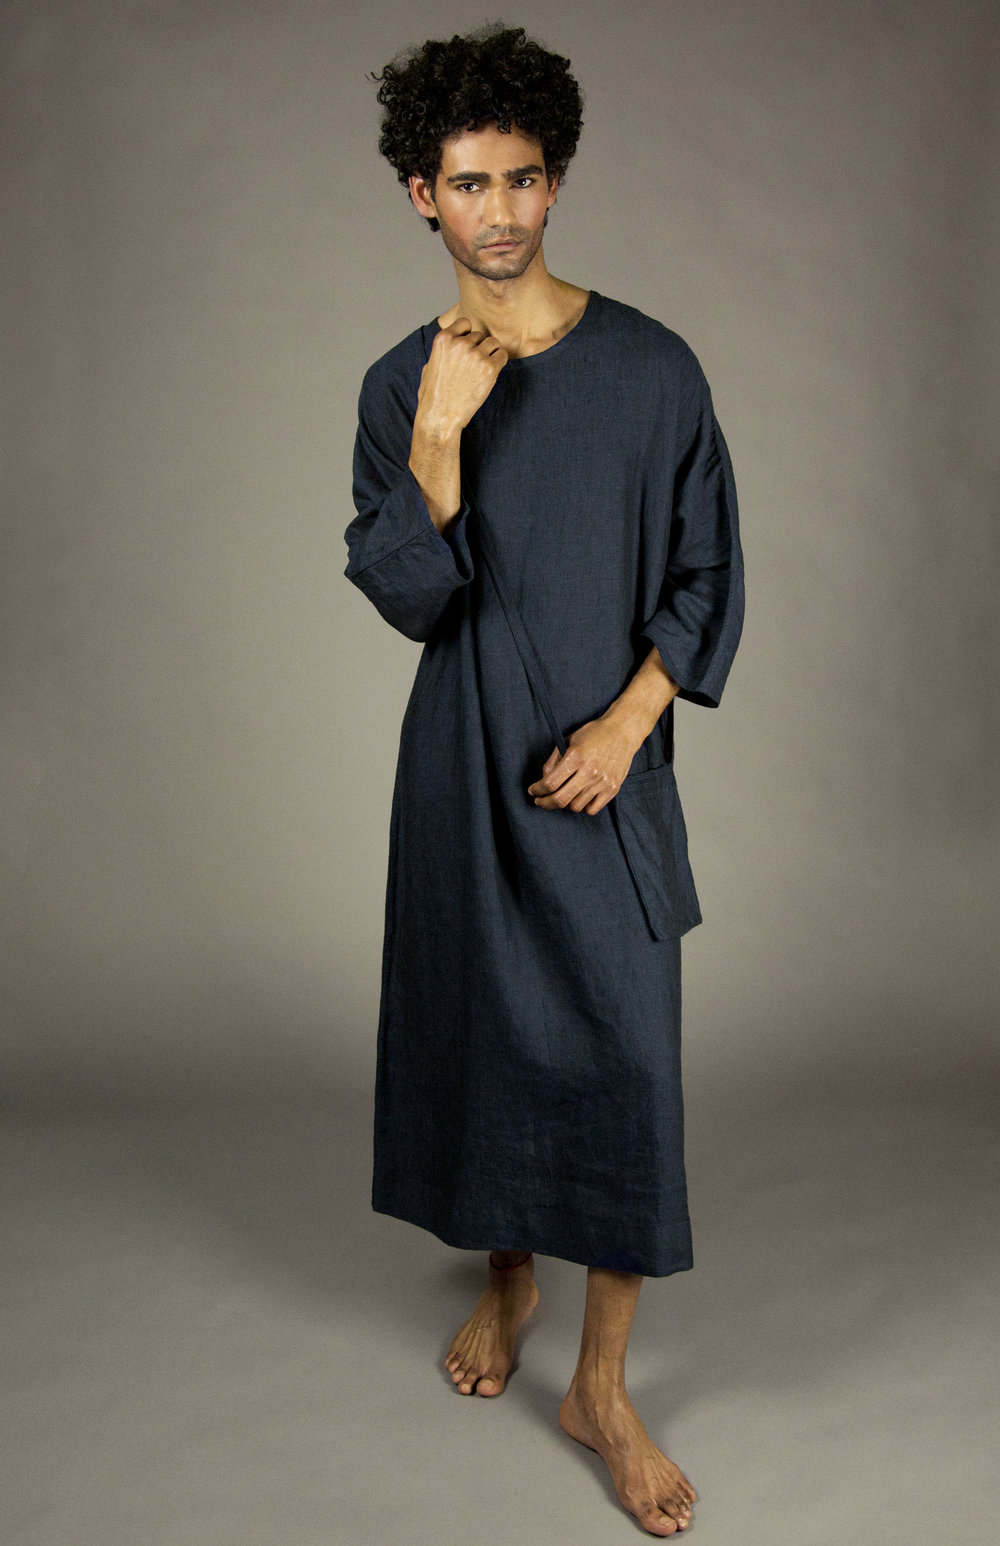 caftan 1 indigo  full-length linen caftan with linen cross-body strap pouch.dolman 3/4 sleeves.  sizes 0-1-2-3  100% washed linen